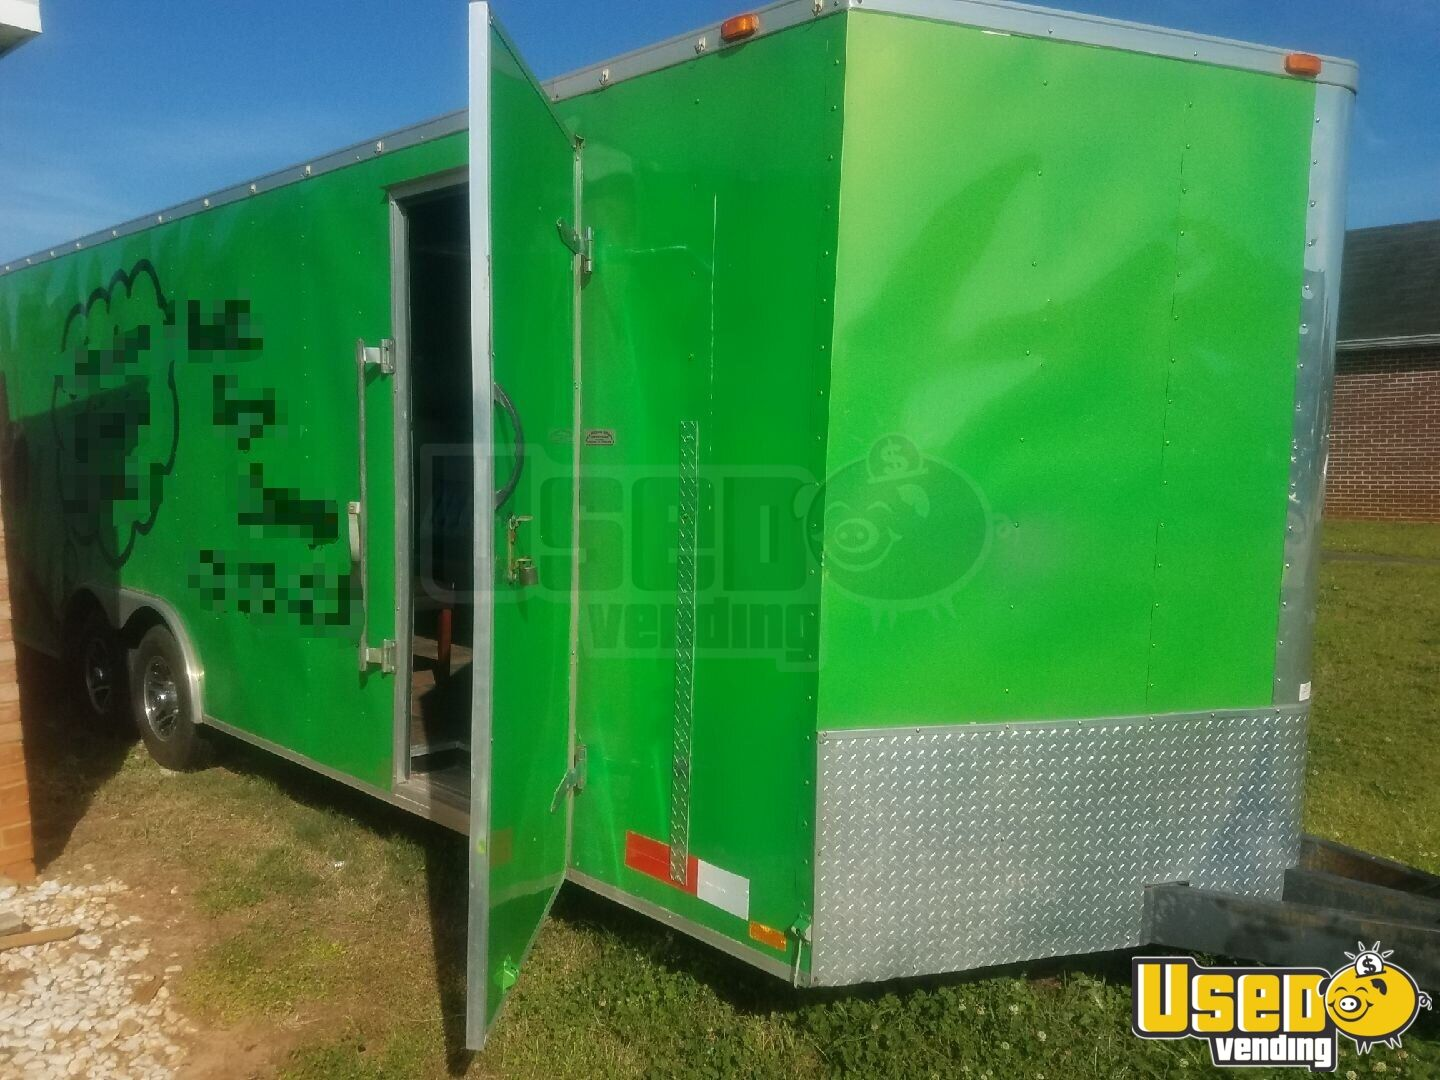 2004 24 Foot Mobile Cigar / Hookah Lounge Trailer Other Mobile Business Insulated Walls Georgia for Sale - 5